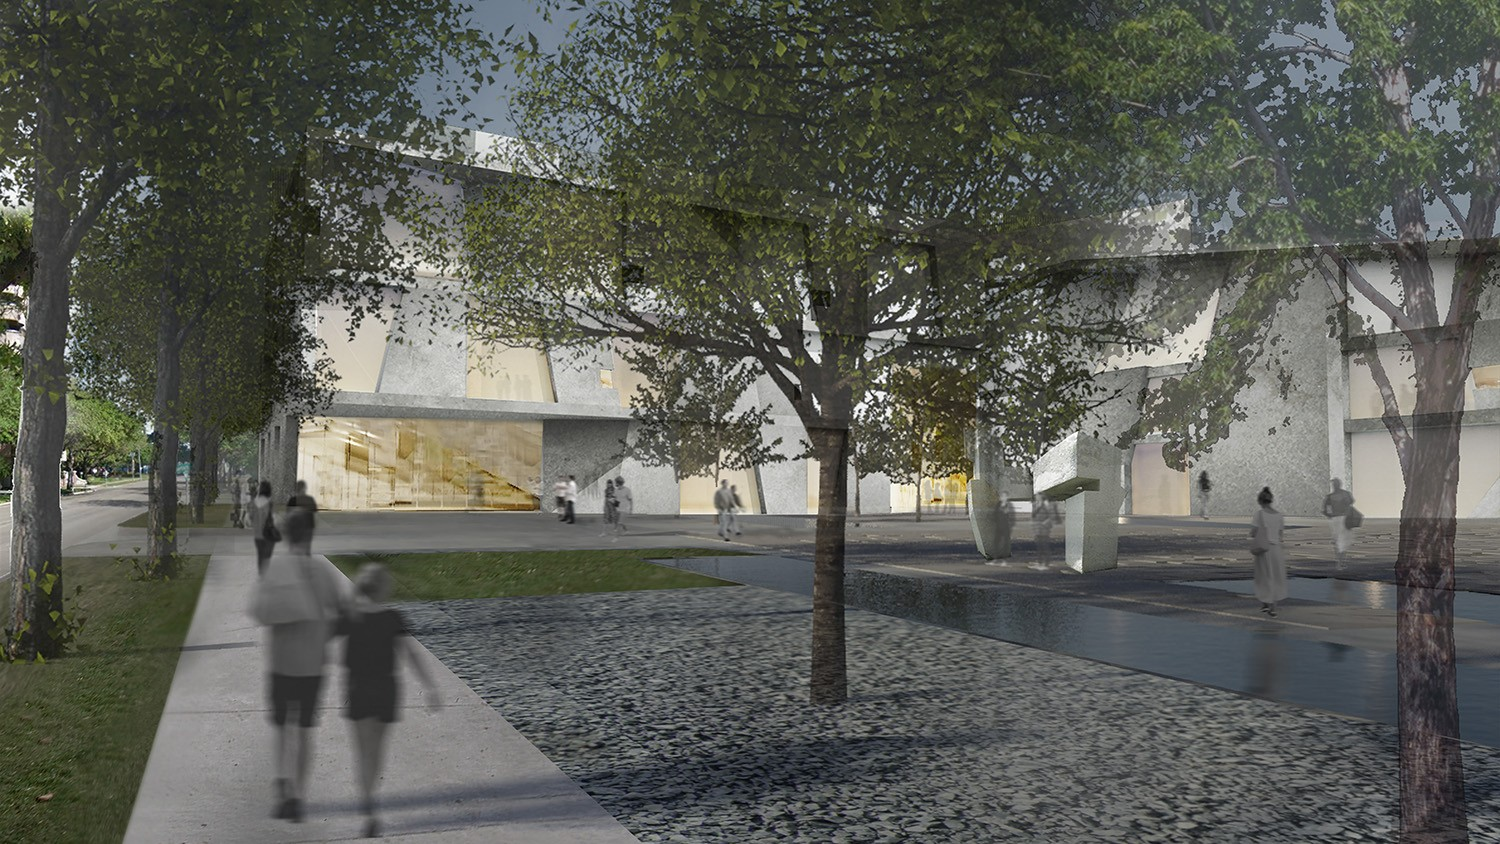 https://s3.us-east-2.amazonaws.com/steven-holl/uploads/projects/project-images/StevenHollArchitects_Glassell_courtyardview_WH.jpg